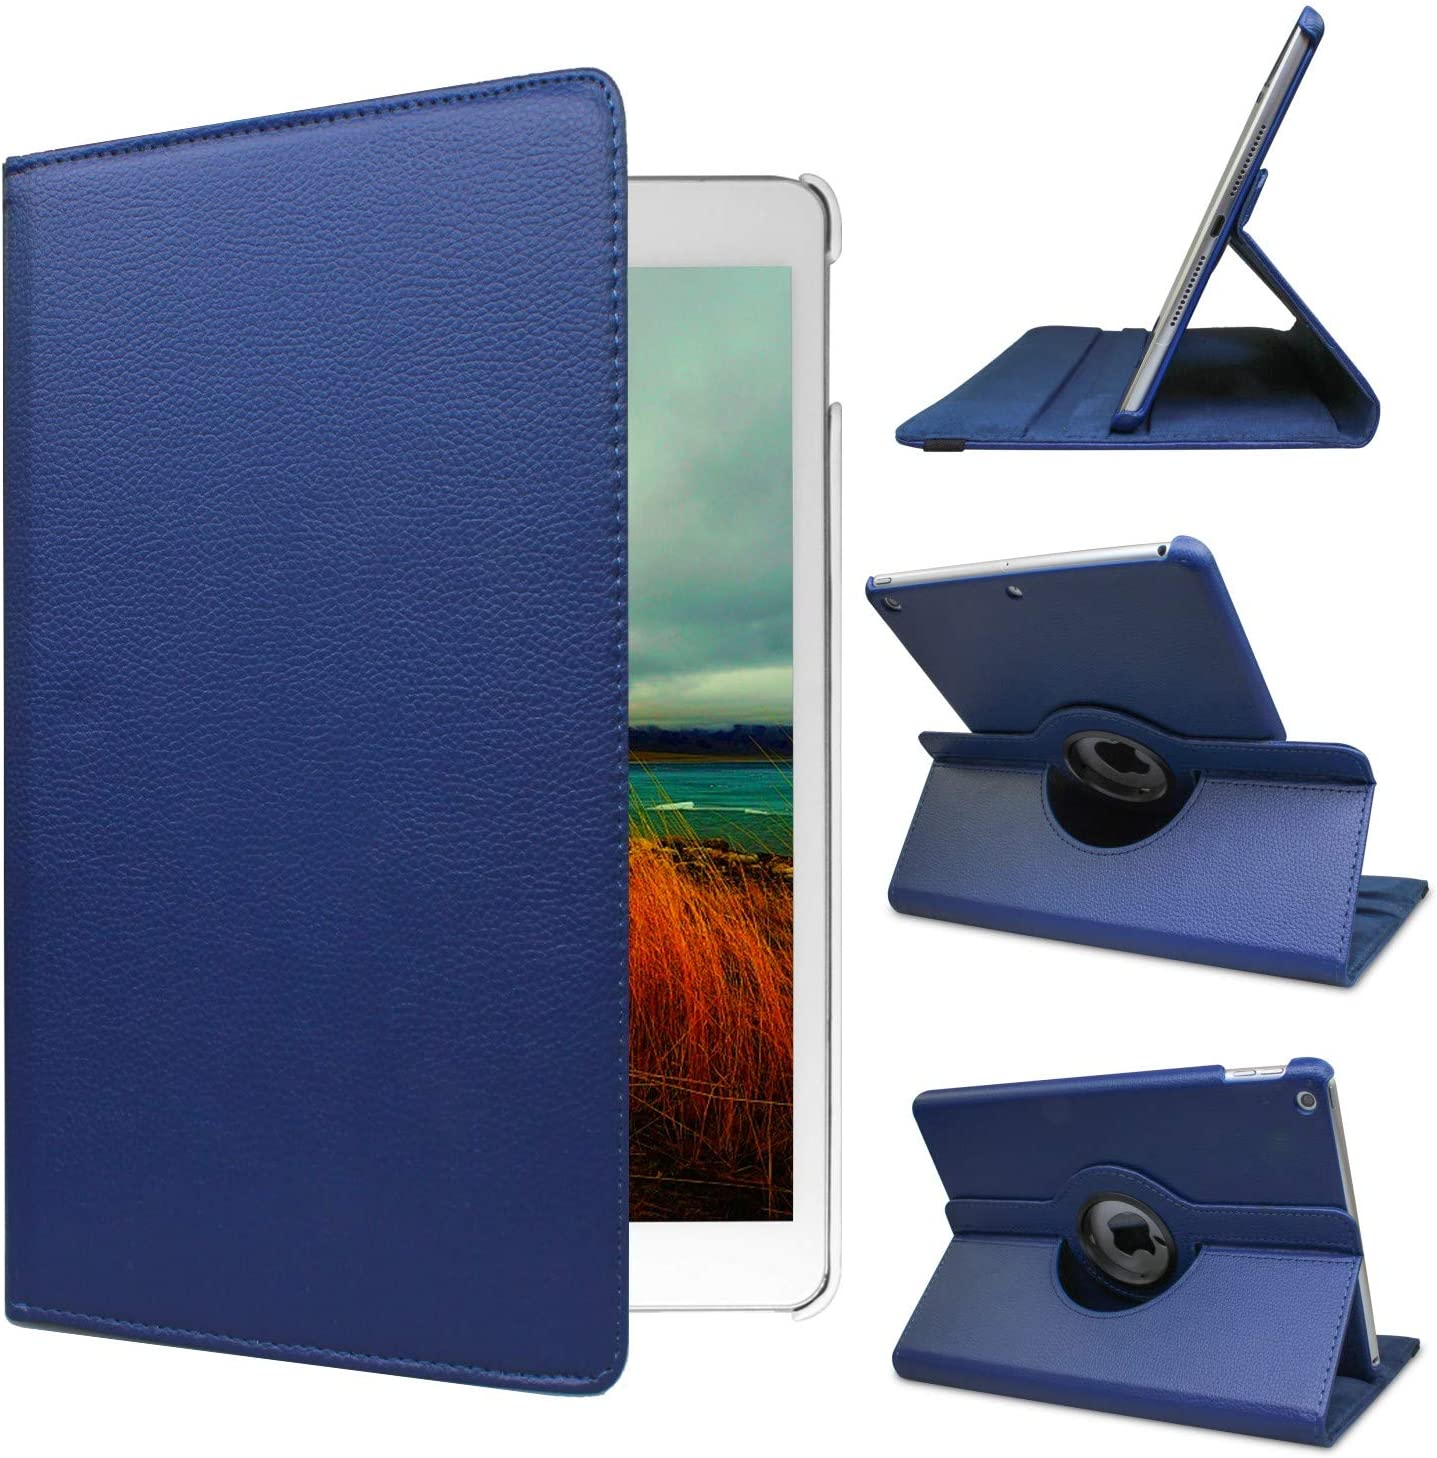 Ipad Case 360 Degrees Rotating Stand Leather Magnetic Smart Cover Case for Ipad 2/3/4 Generation Case with Bonus Screen Protector, Stylus and Cleaning Cloth (Royal Blue)